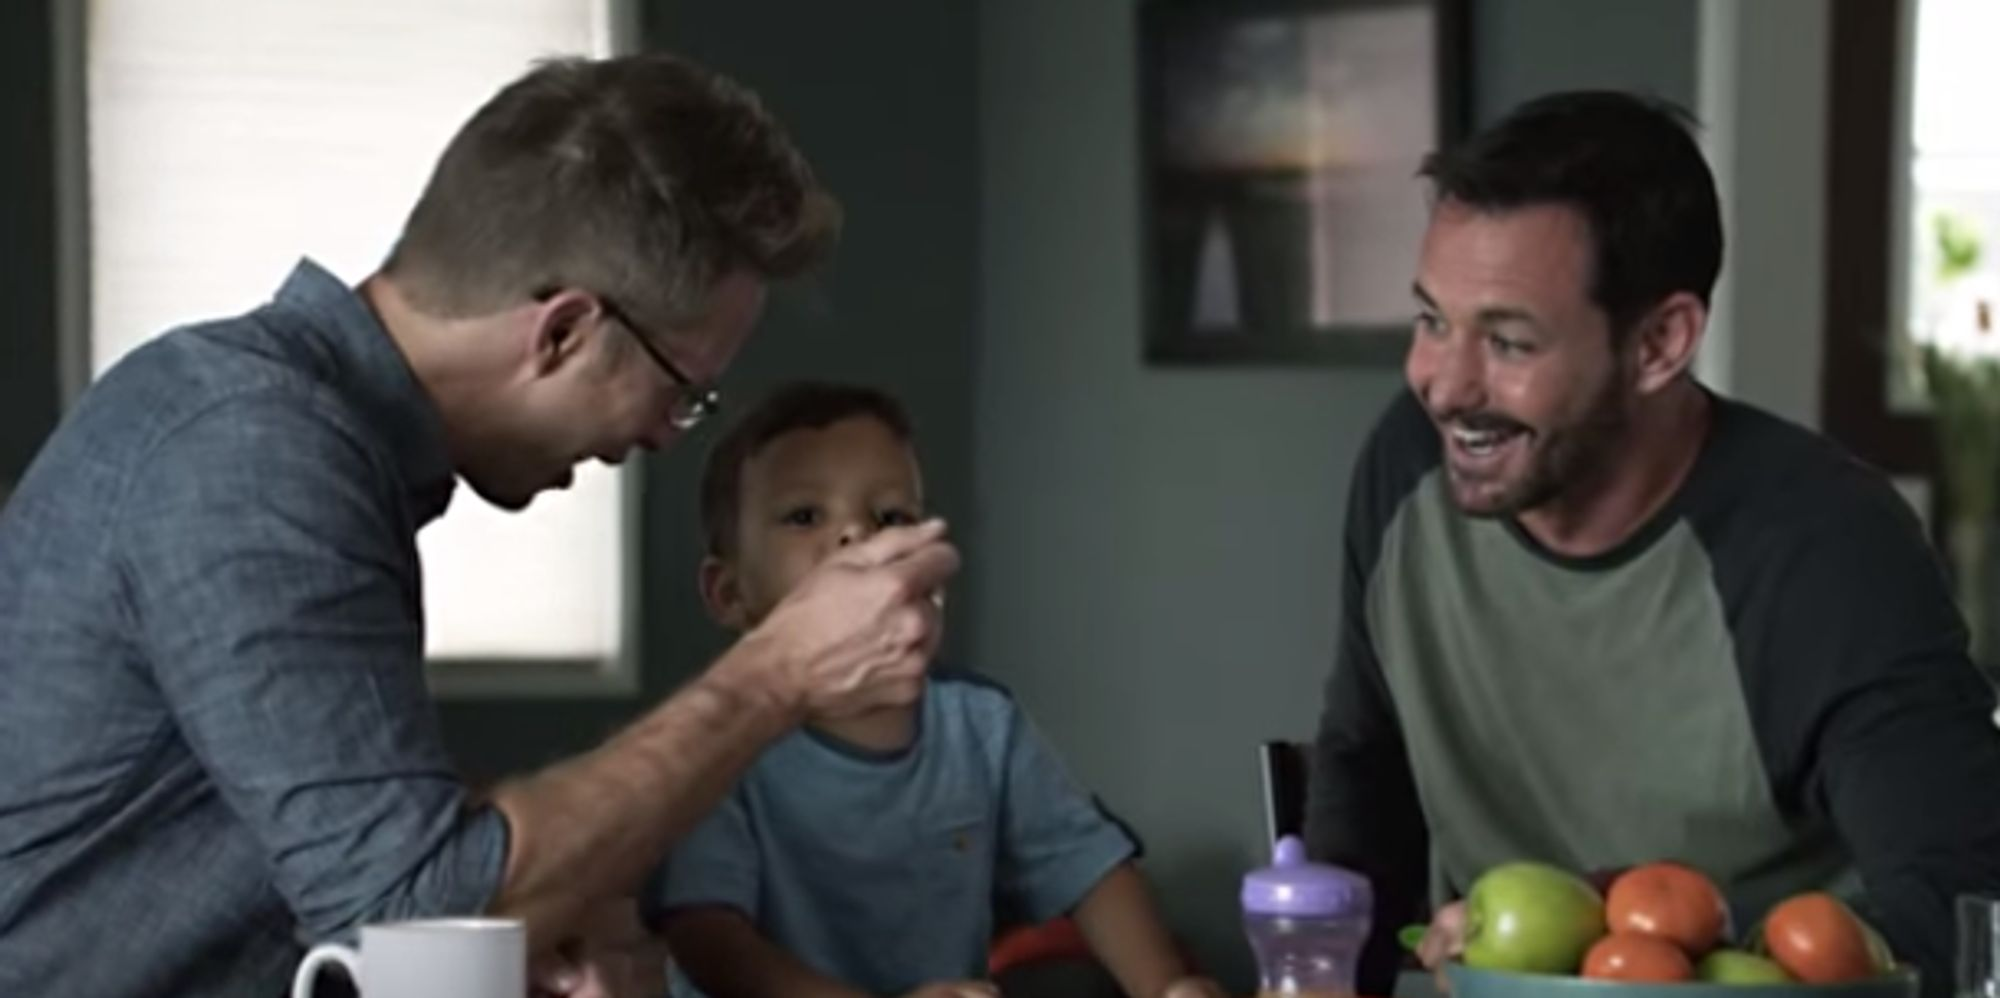 gay fathers support group